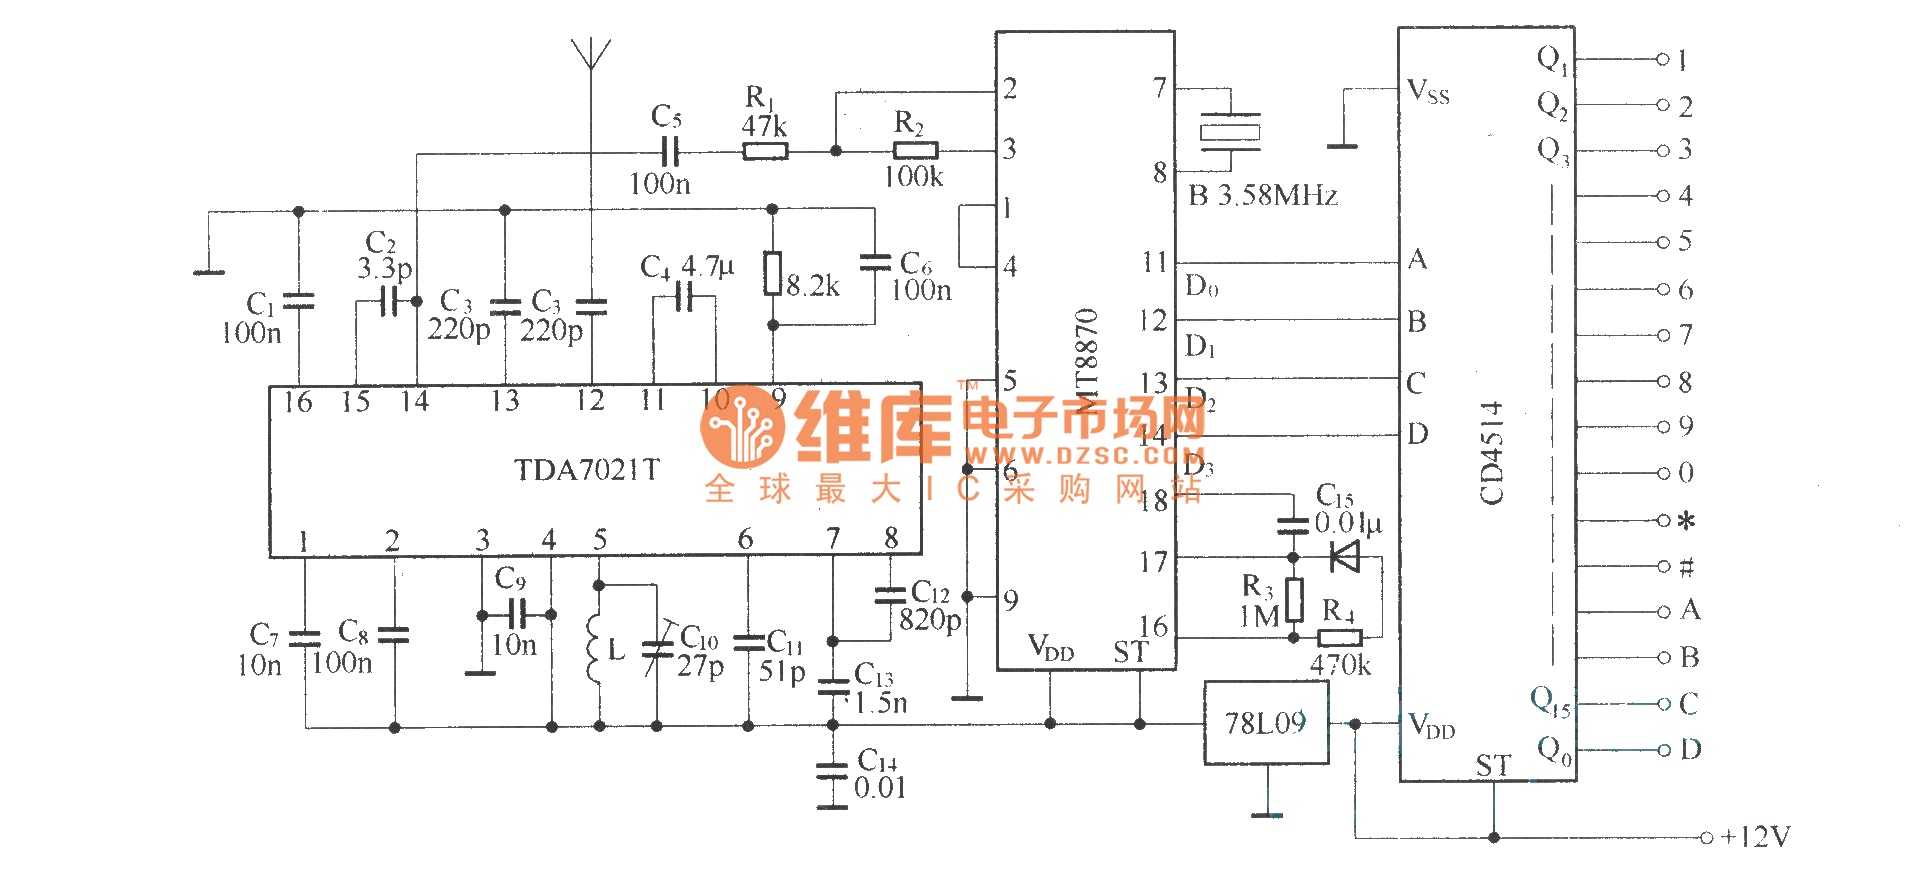 dtmf decoder ic mt8870 pin diagram ribu1c relay wiring code 16 channels remote control circuit